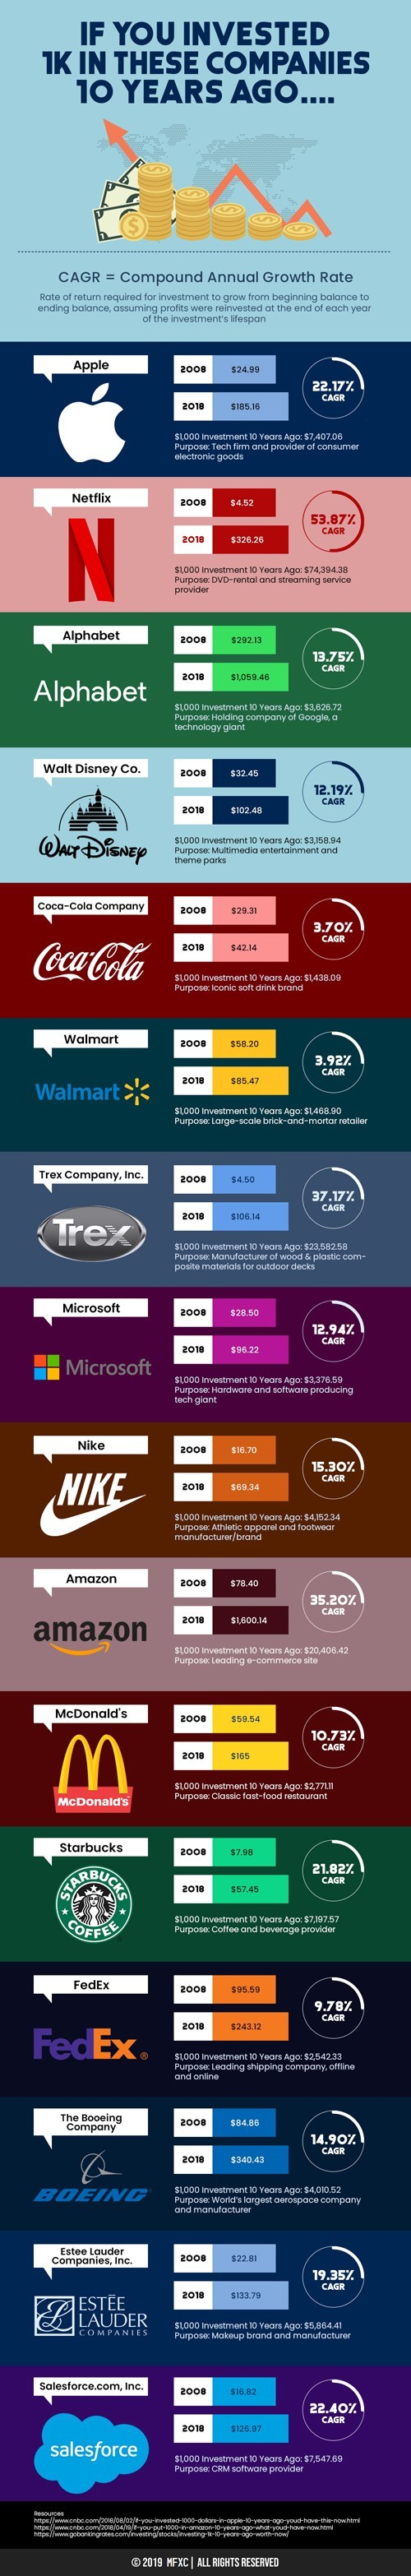 If You Invested 1K in These Companies 10 Years Ago…